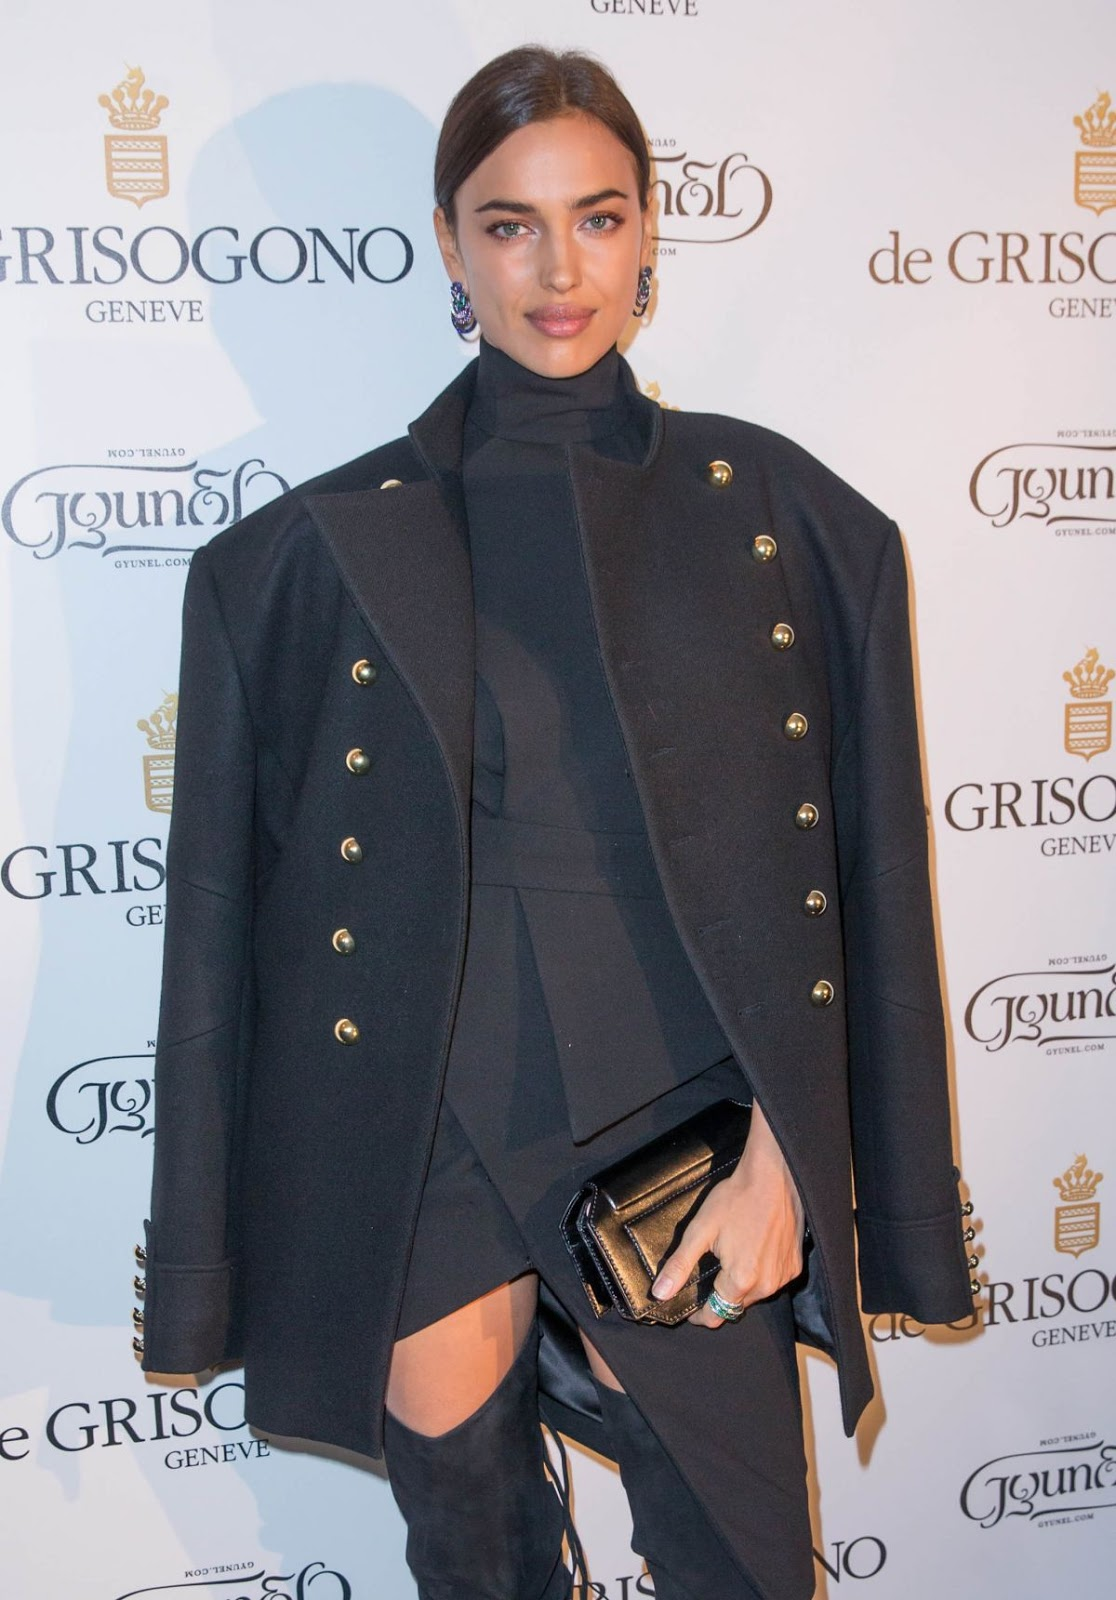 Cristiano Ronaldo Girlfriend Irina Shayk at De Grisogono Photocall at Rue De La Boetie in Paris